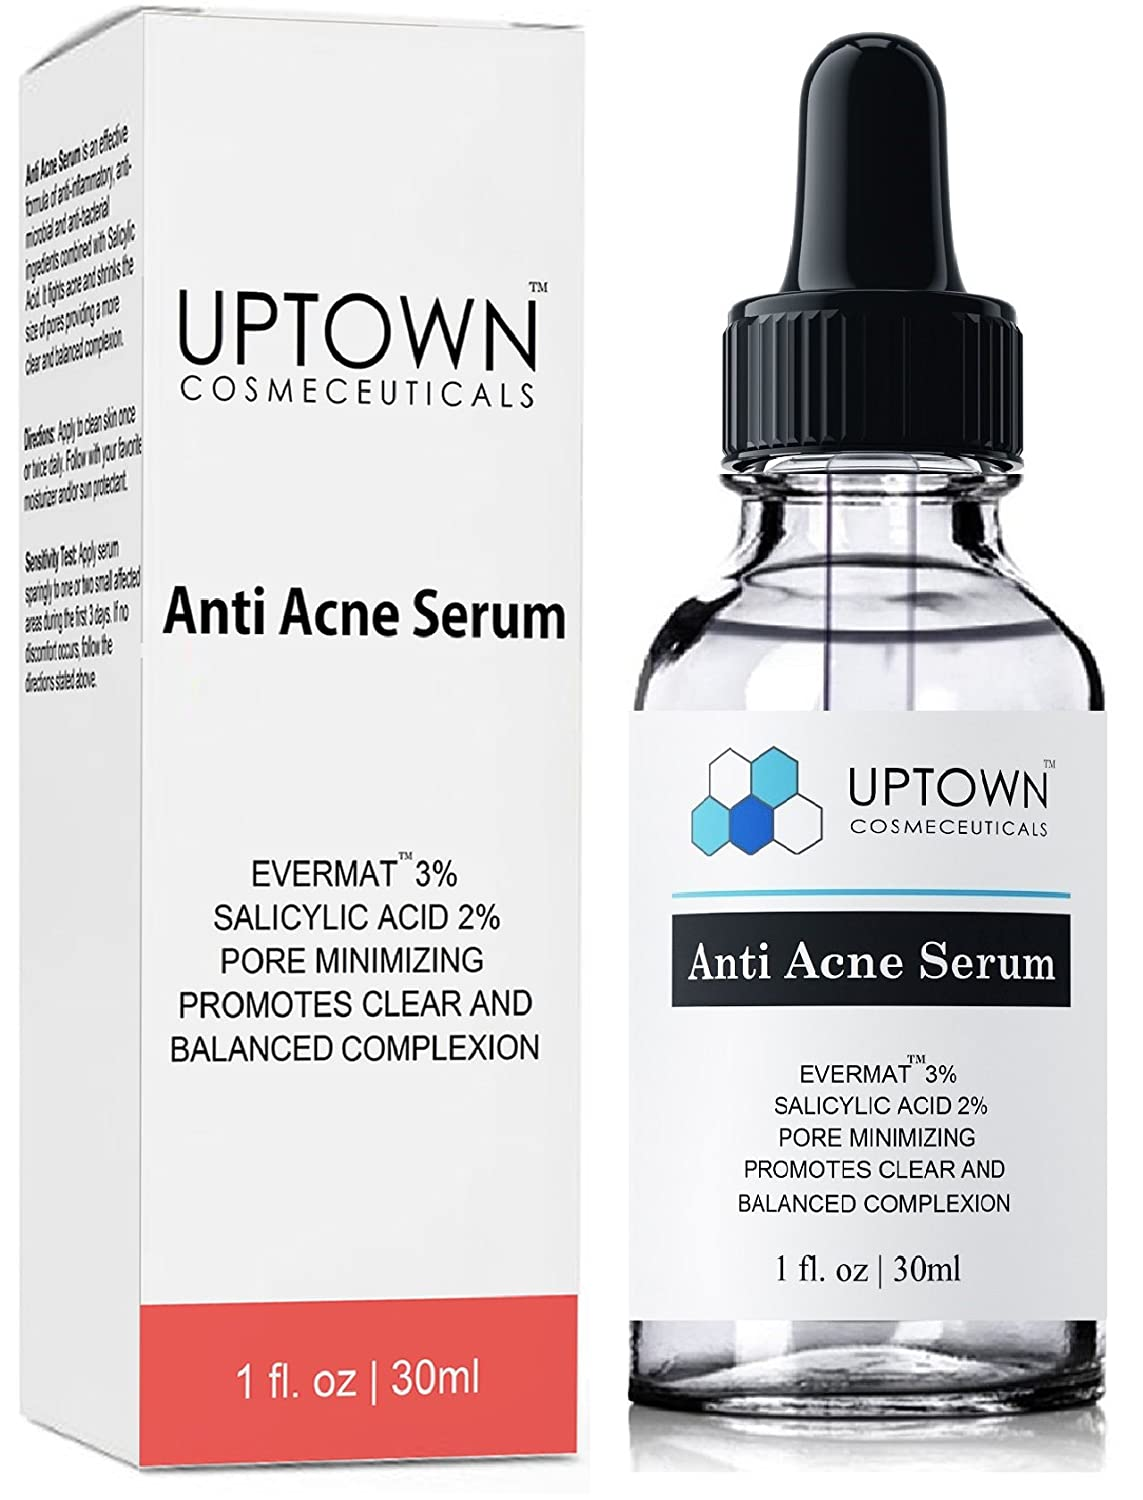 Anti Acne Serum for Men, Women & Teens From Uptown Cosmeceuticals Offers Cutting Edge Skin Care Product That Helps to Control & Get Rid of Acne, Best Pore Minimizer Treatment, 30ml